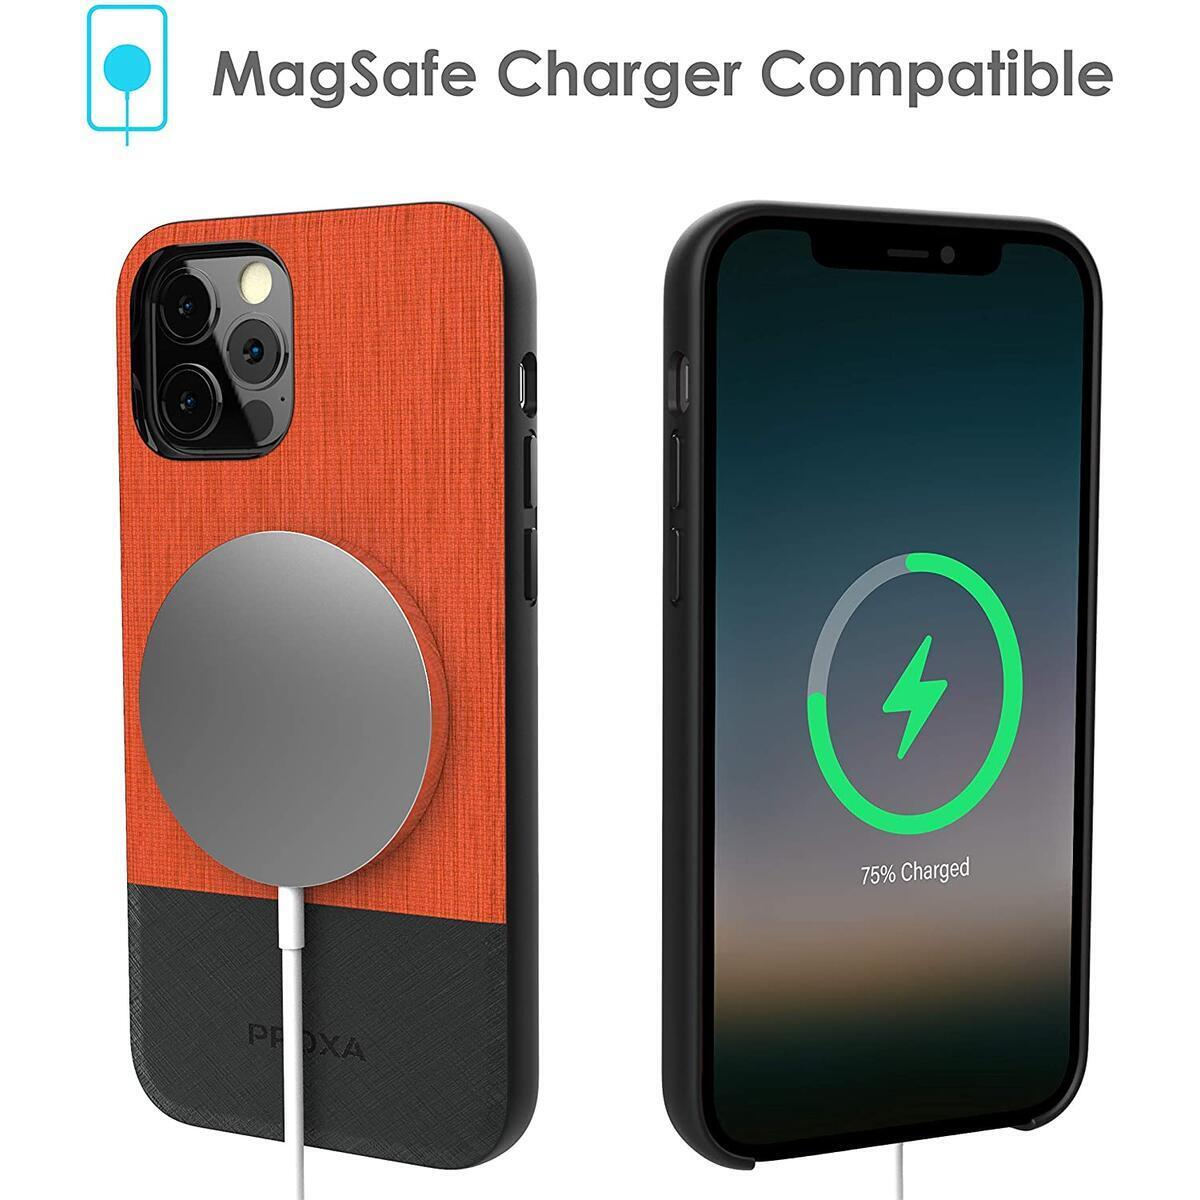 PROXA Case for iPhone 12 Pro Max 6.7 inch/MagSafe Charger Compatible - [Protective/Scratchproof] - Sunset Orange